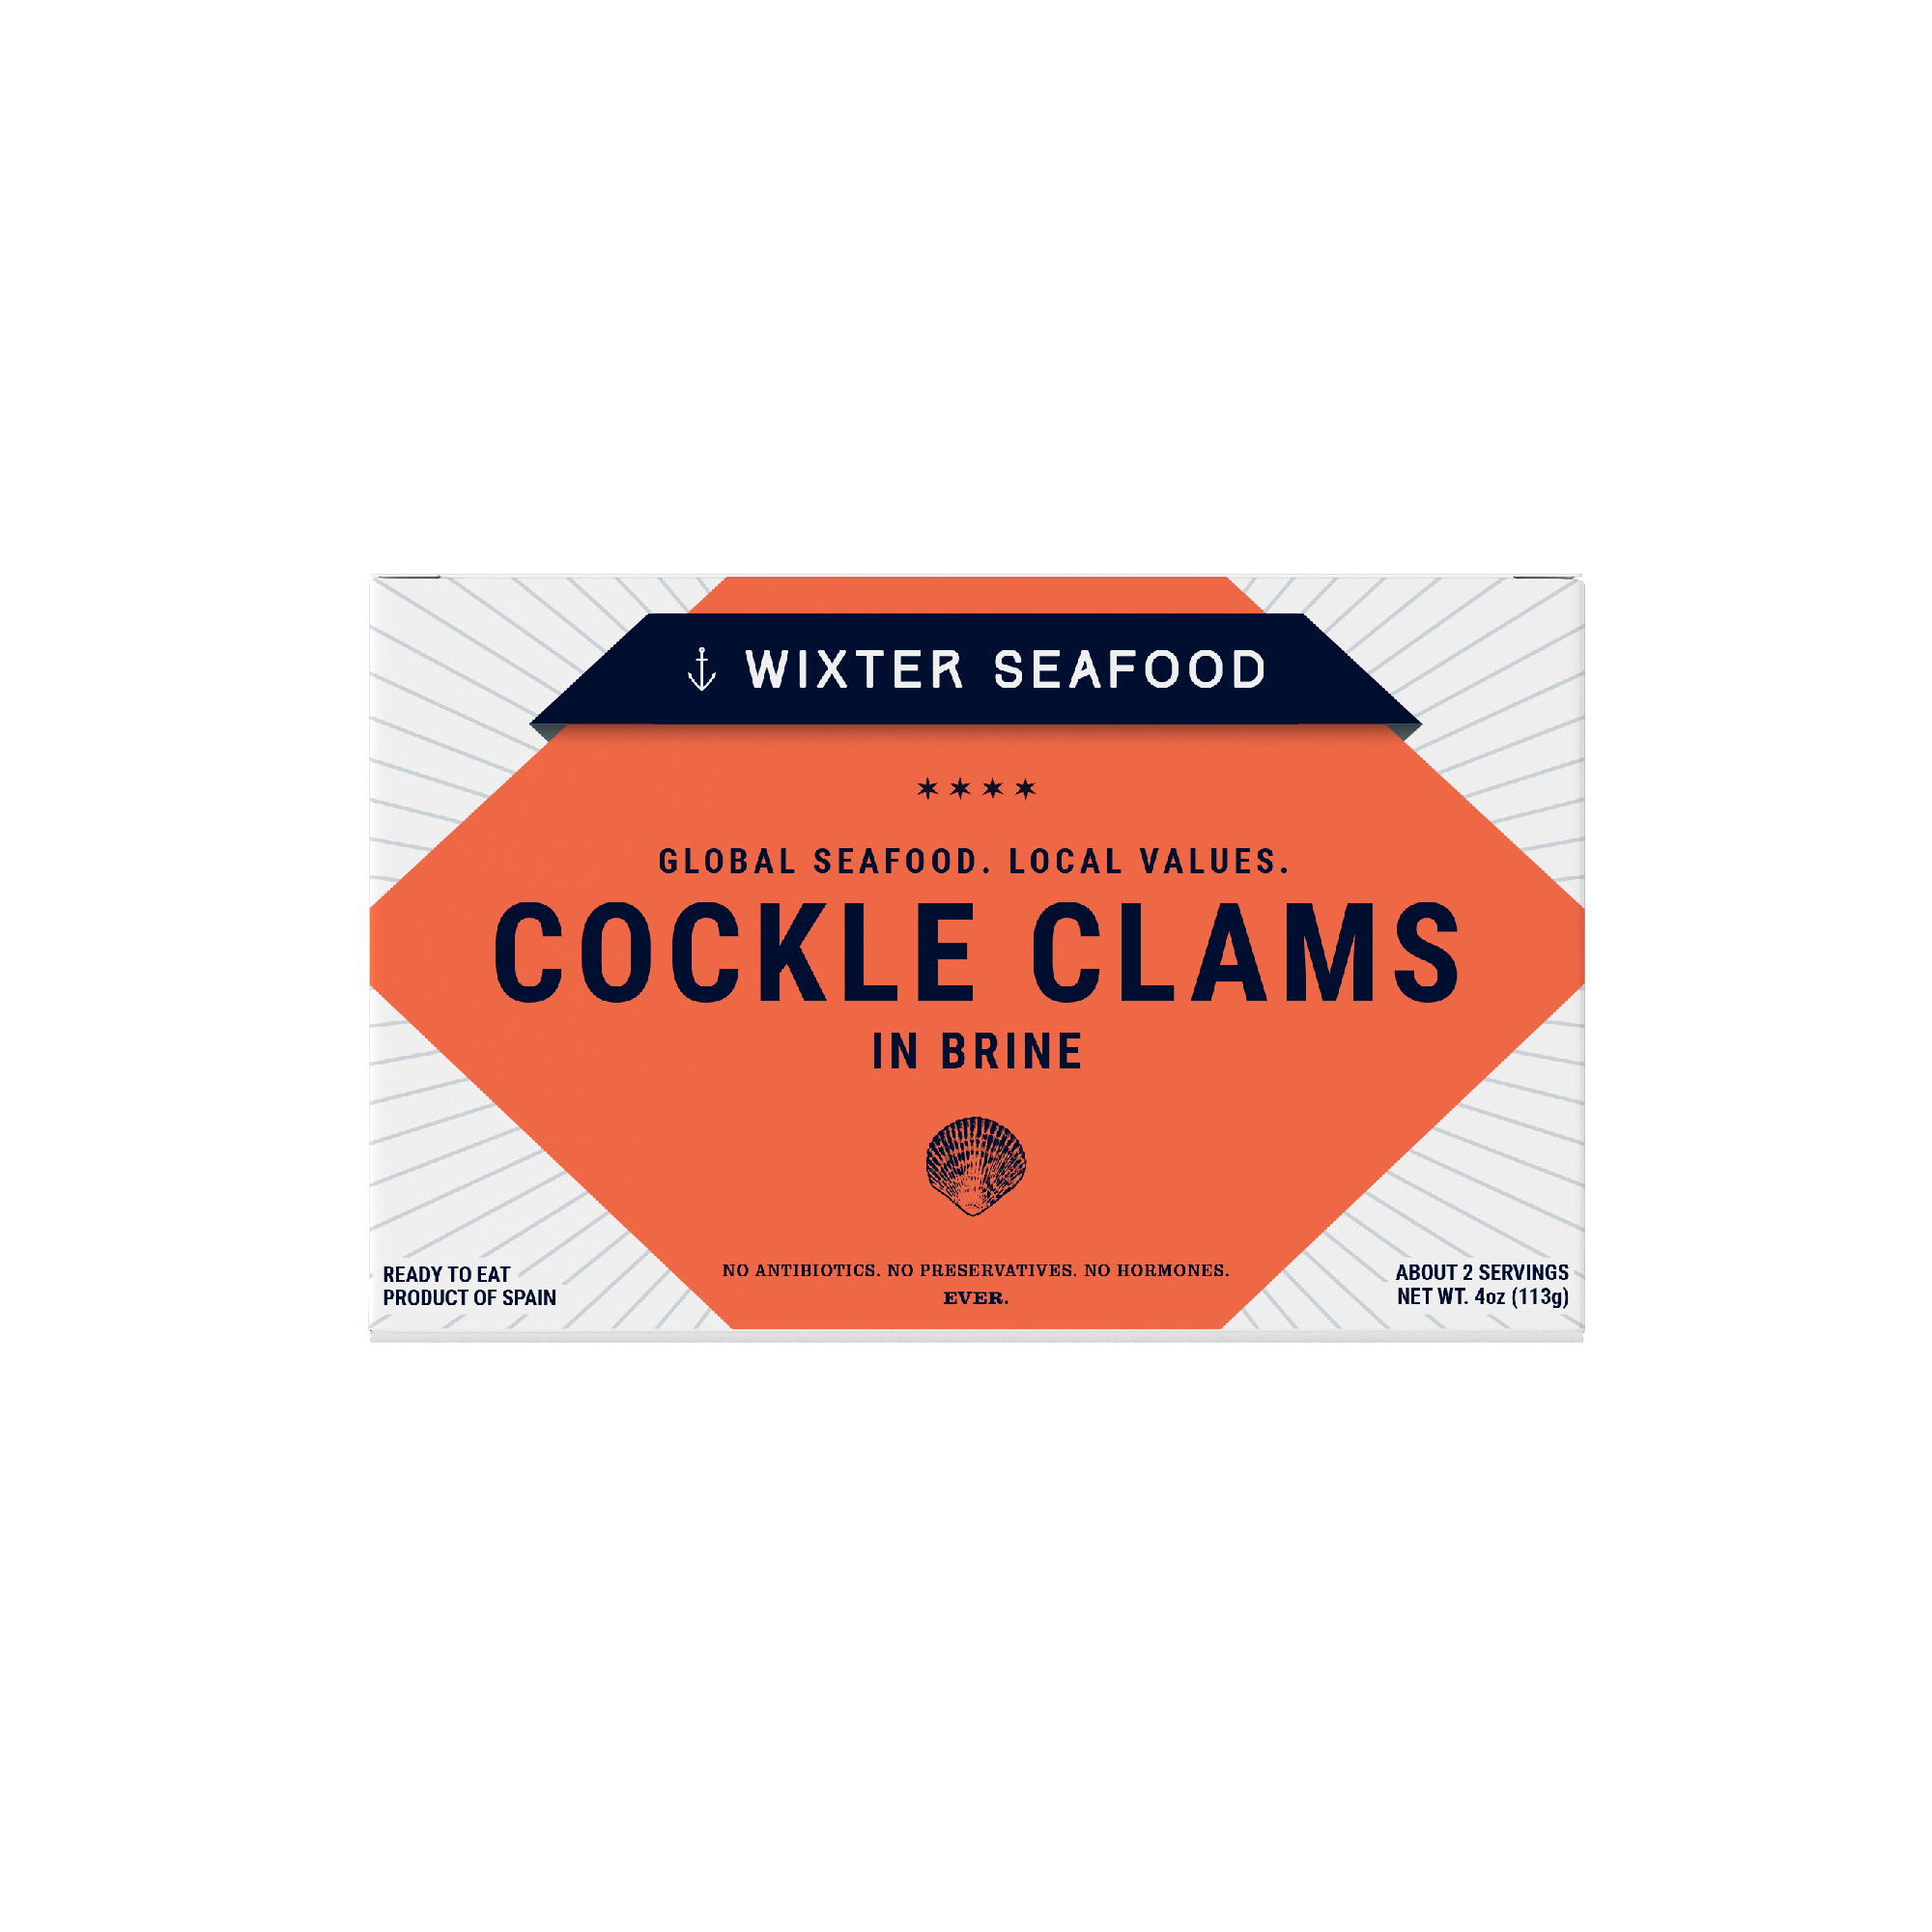 Cockle Clams in Brine